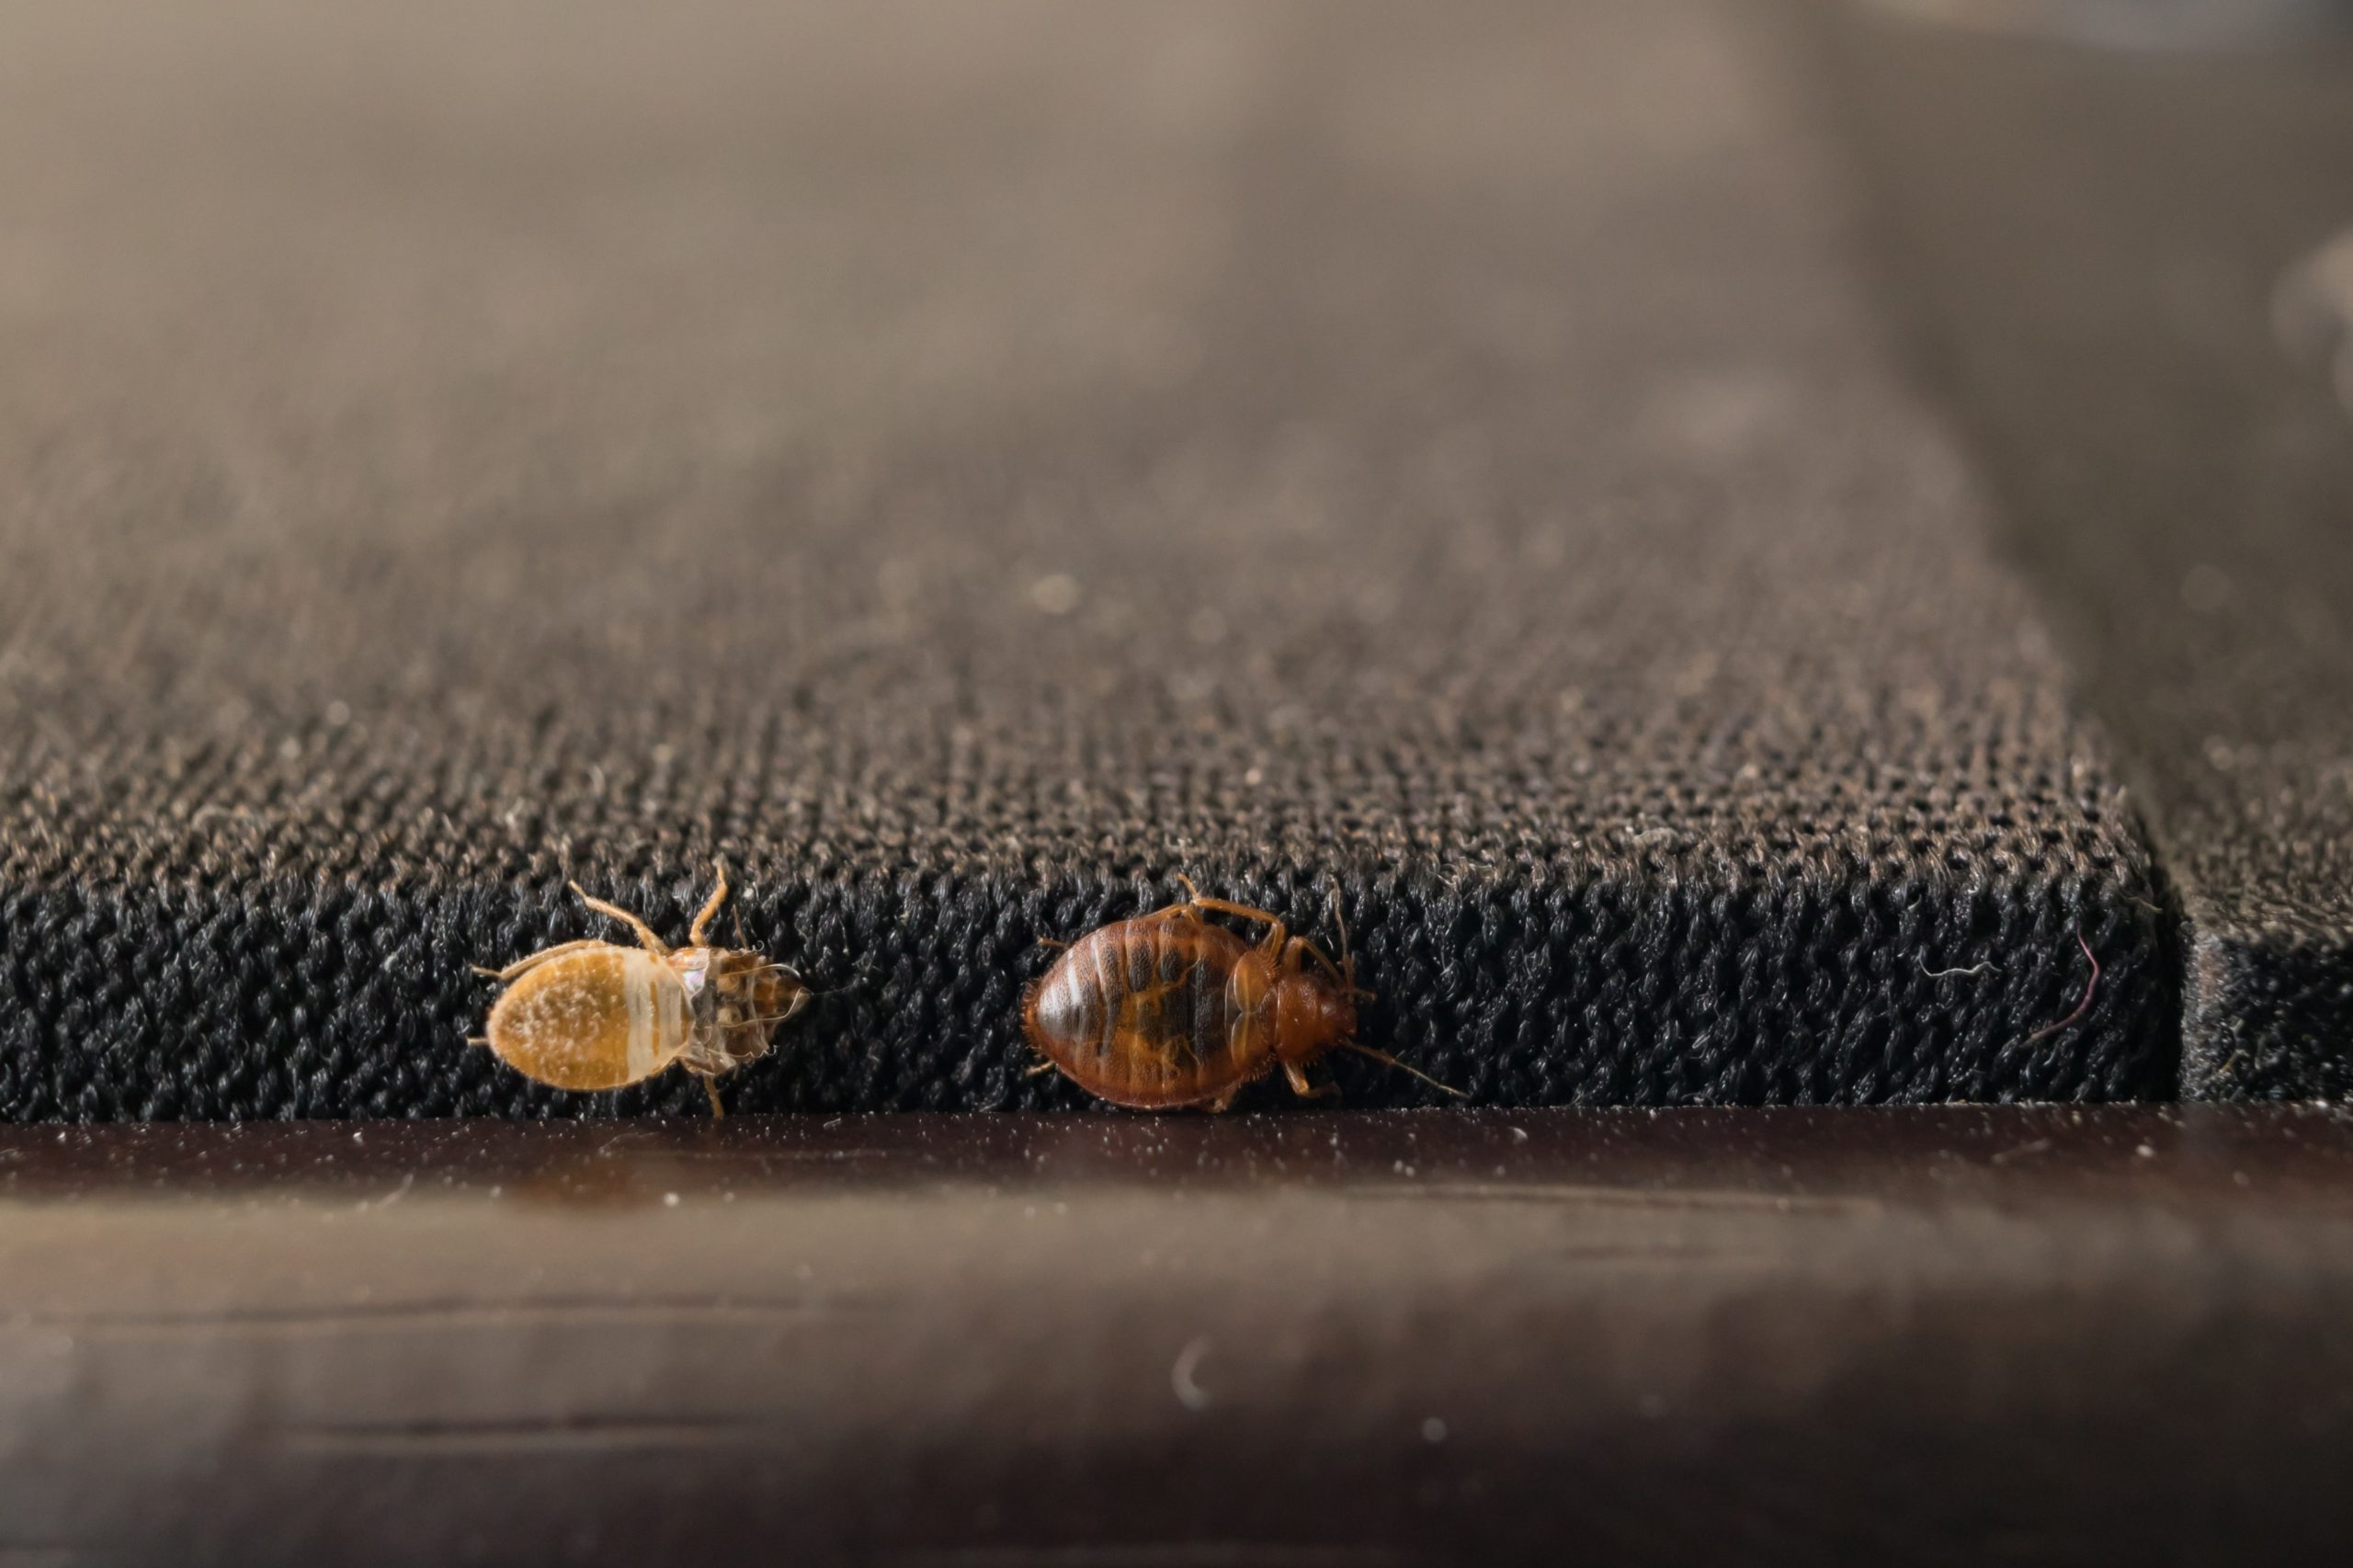 How quickly does bed bugs spread?